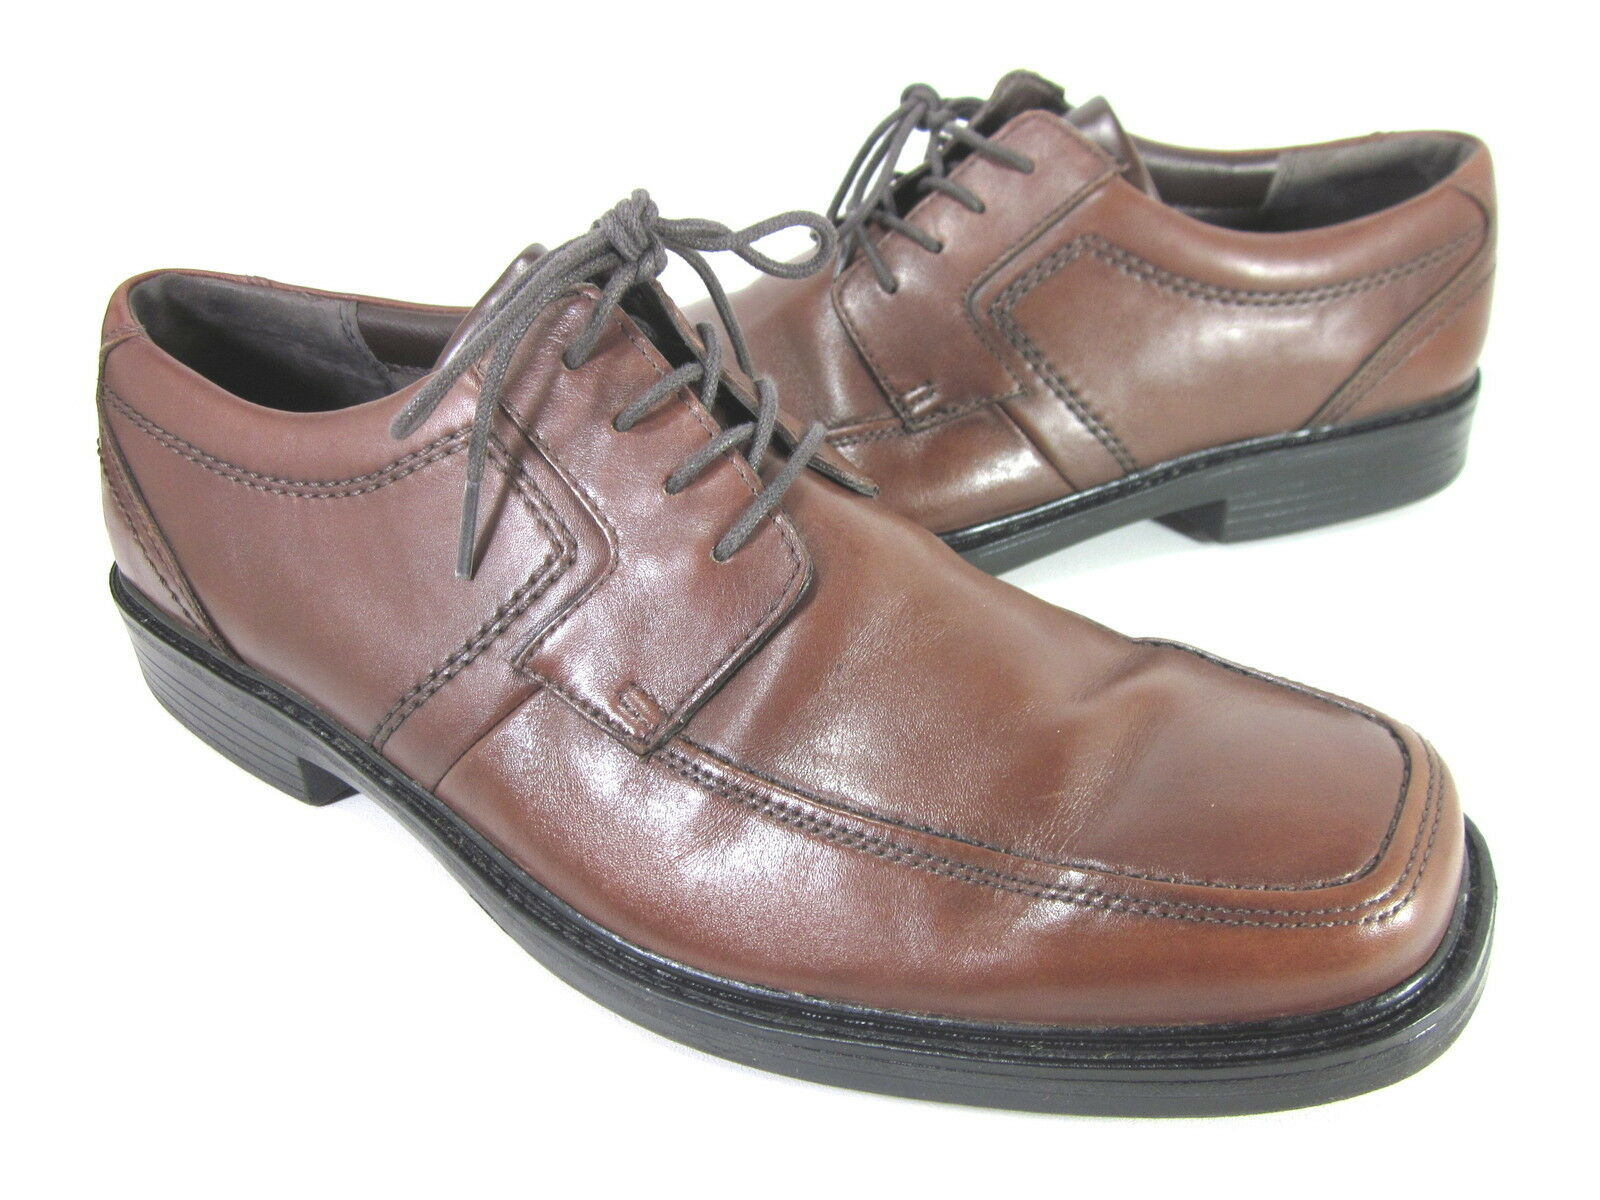 BOSTONIAN MEN'S MALTHUS COMFORT OXFORD BROWN LEATHER IMPORTED US SIZE 13 MEDIUM